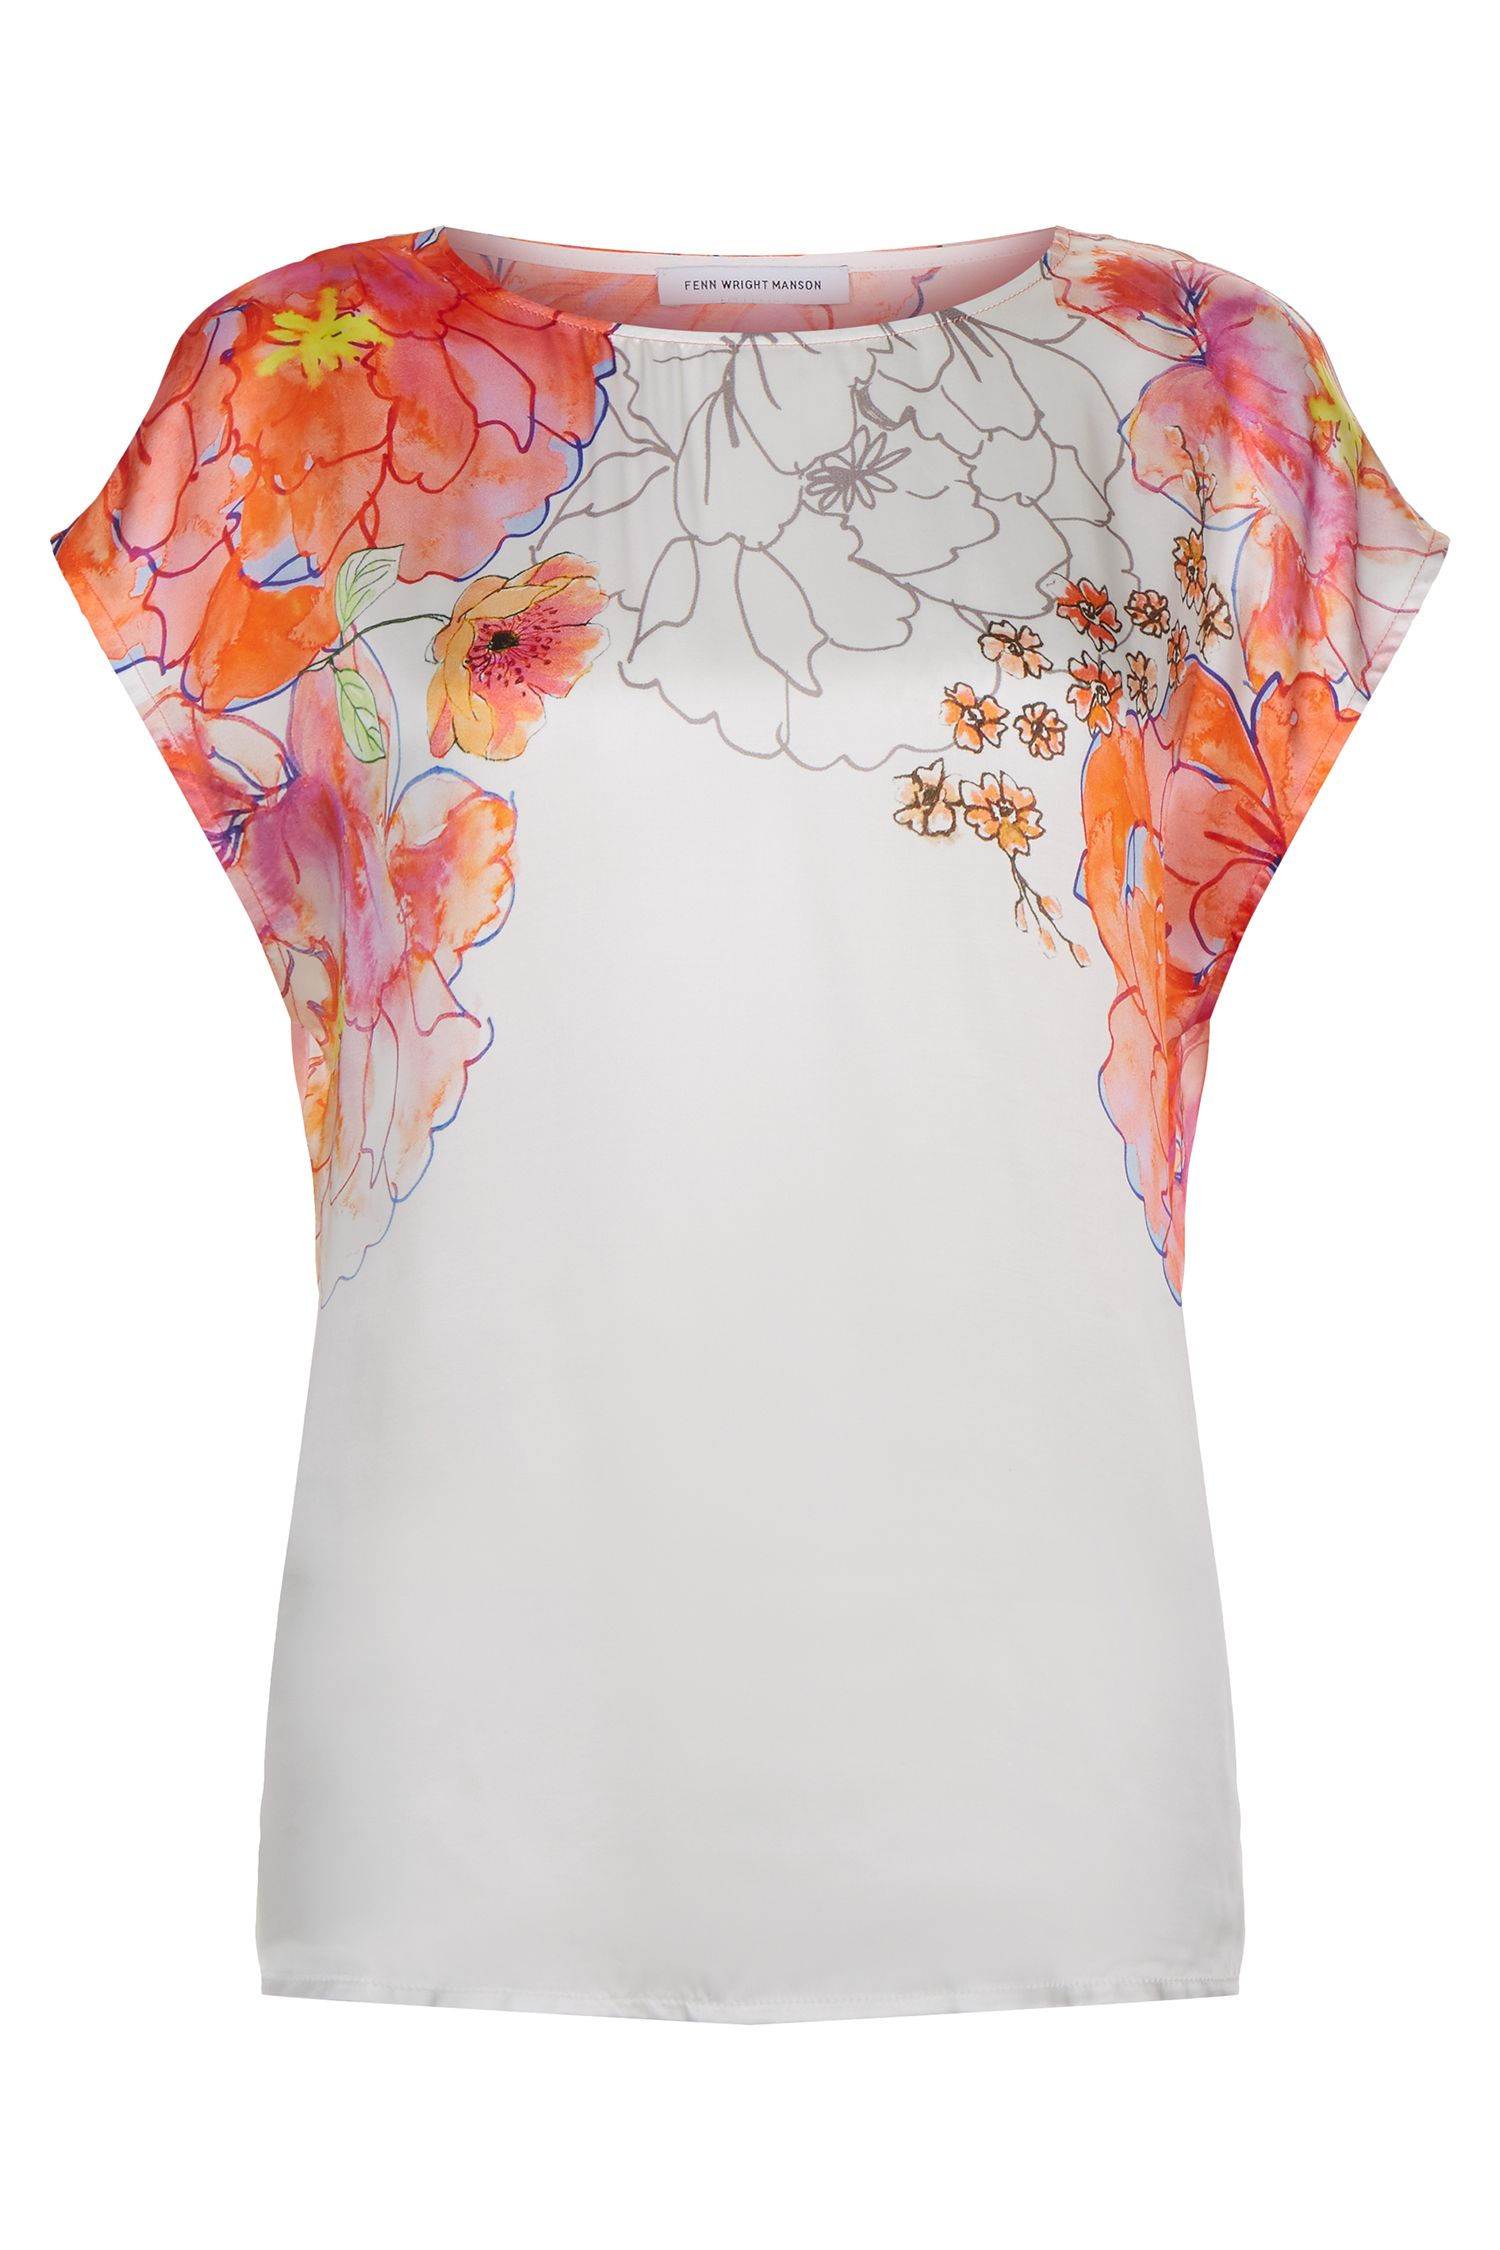 Fenn Wright Manson Cyprus Top, Multi-Coloured